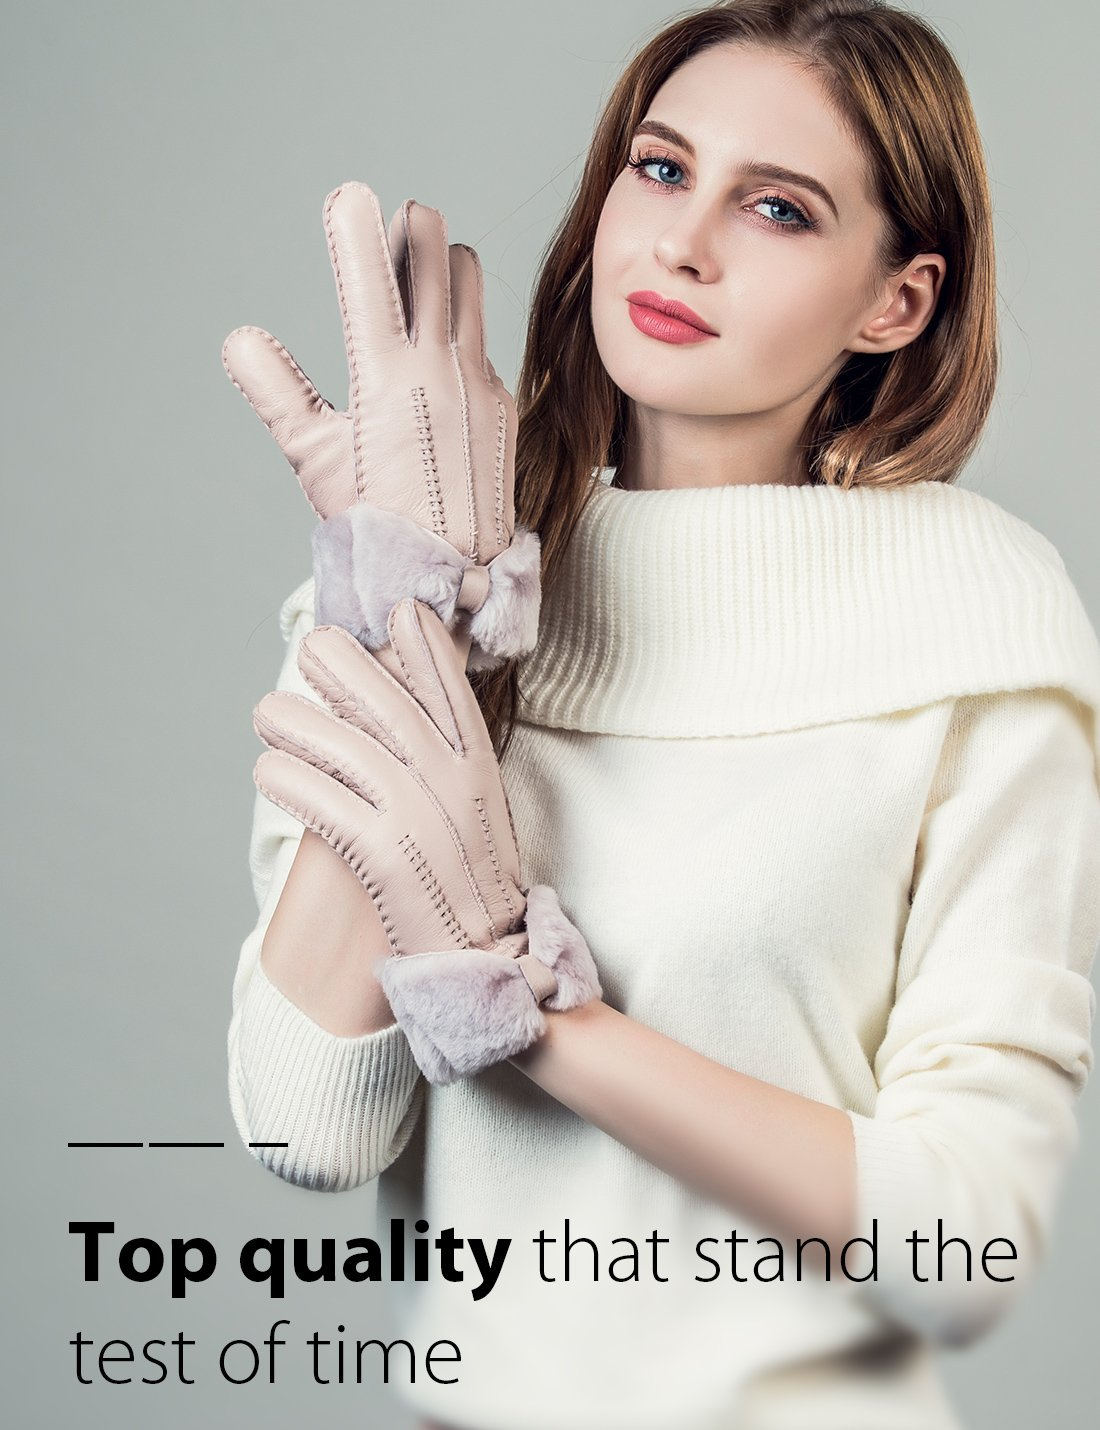 YISEVEN Women's Rugged Sheepskin Shearling Leather Gloves Three Points and Wing Cuffs Soft Thick Furry Fur Lined Warm Lining for Winter Cold Weather Heated Dress Driving Work Xmas Gifts, Pearl Pink S by YISEVEN (Image #4)